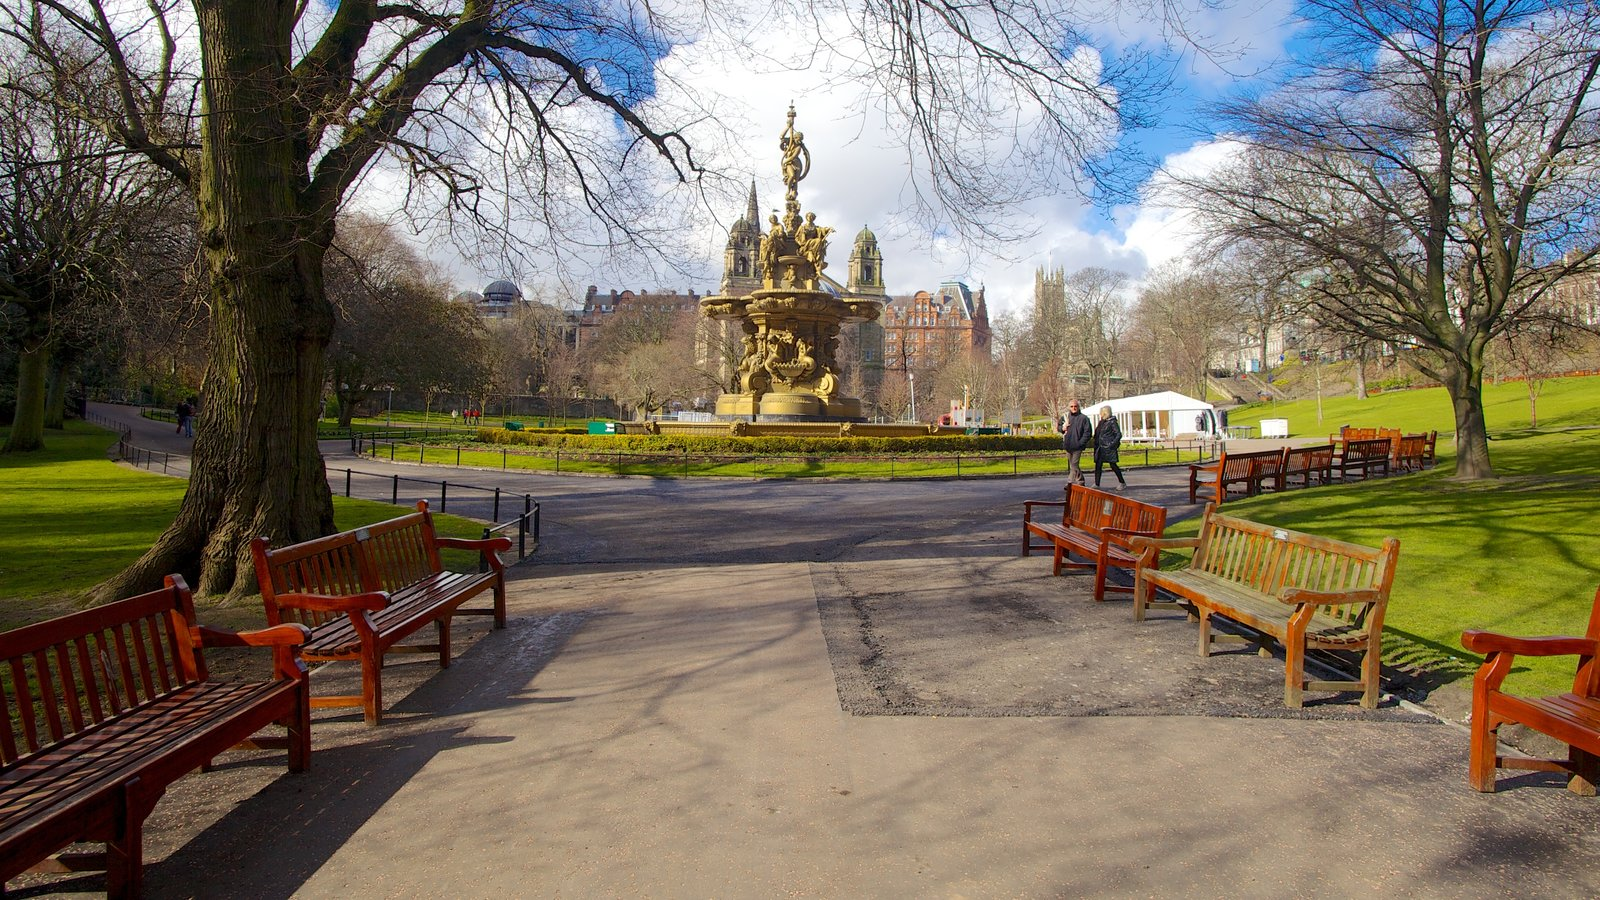 Princes Street Gardens featuring a city, street scenes and a square or plaza